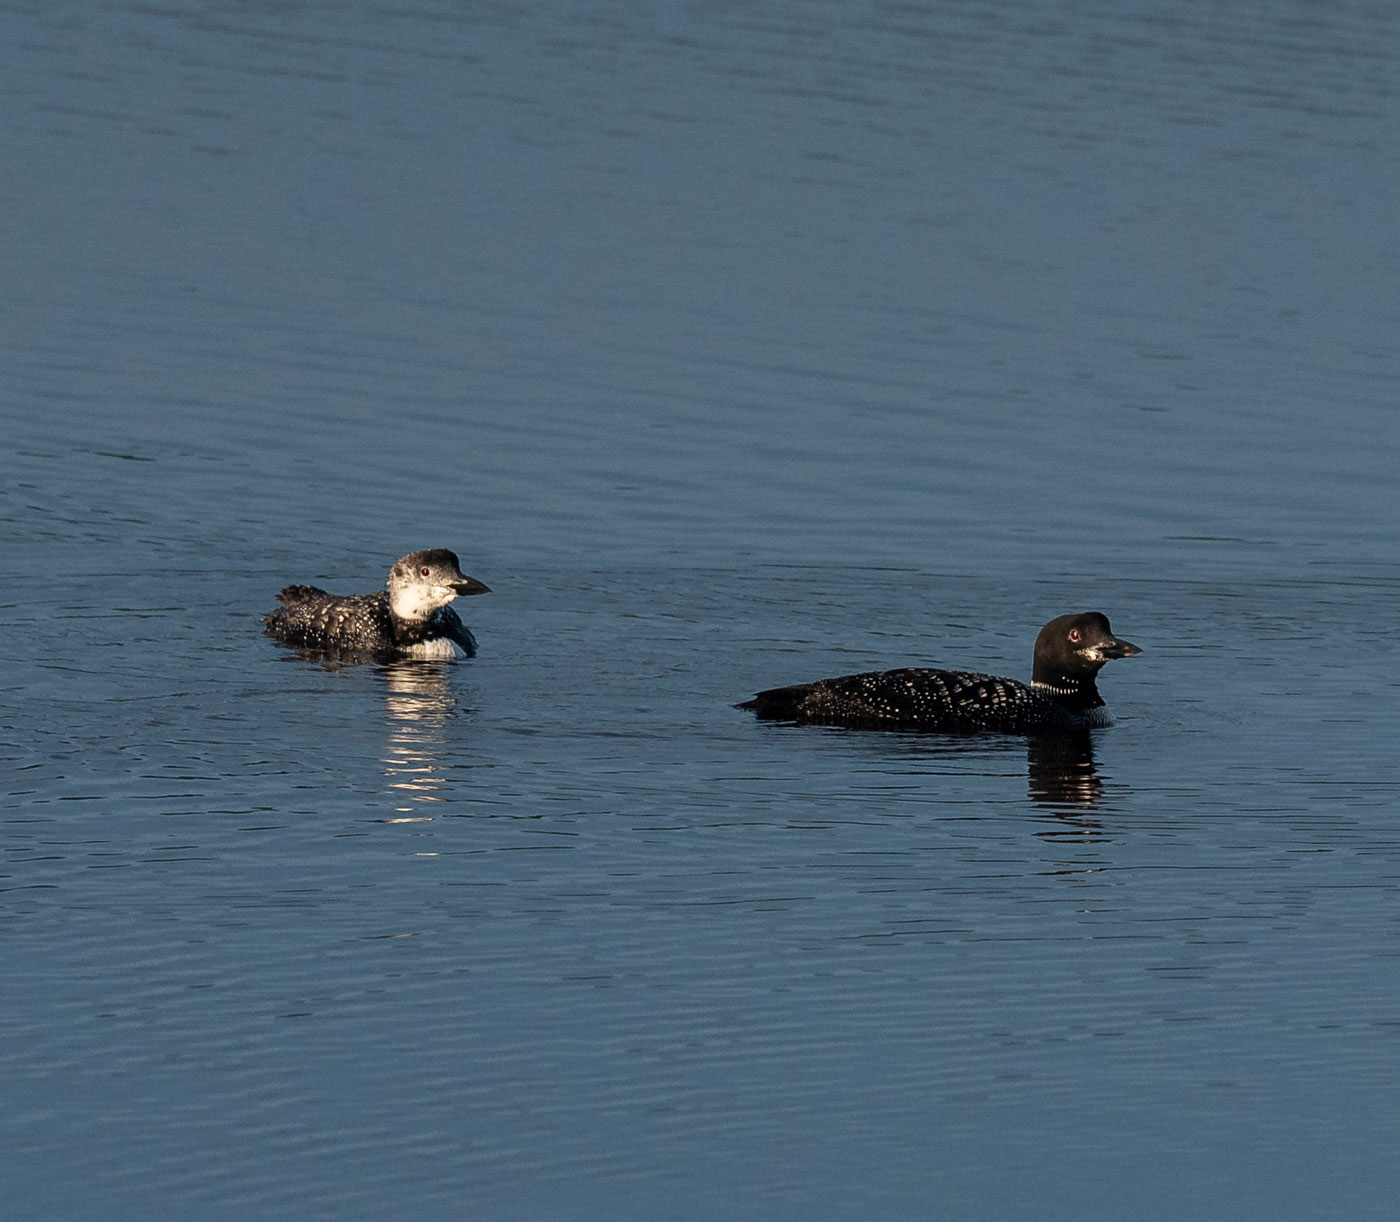 We were visited by loons